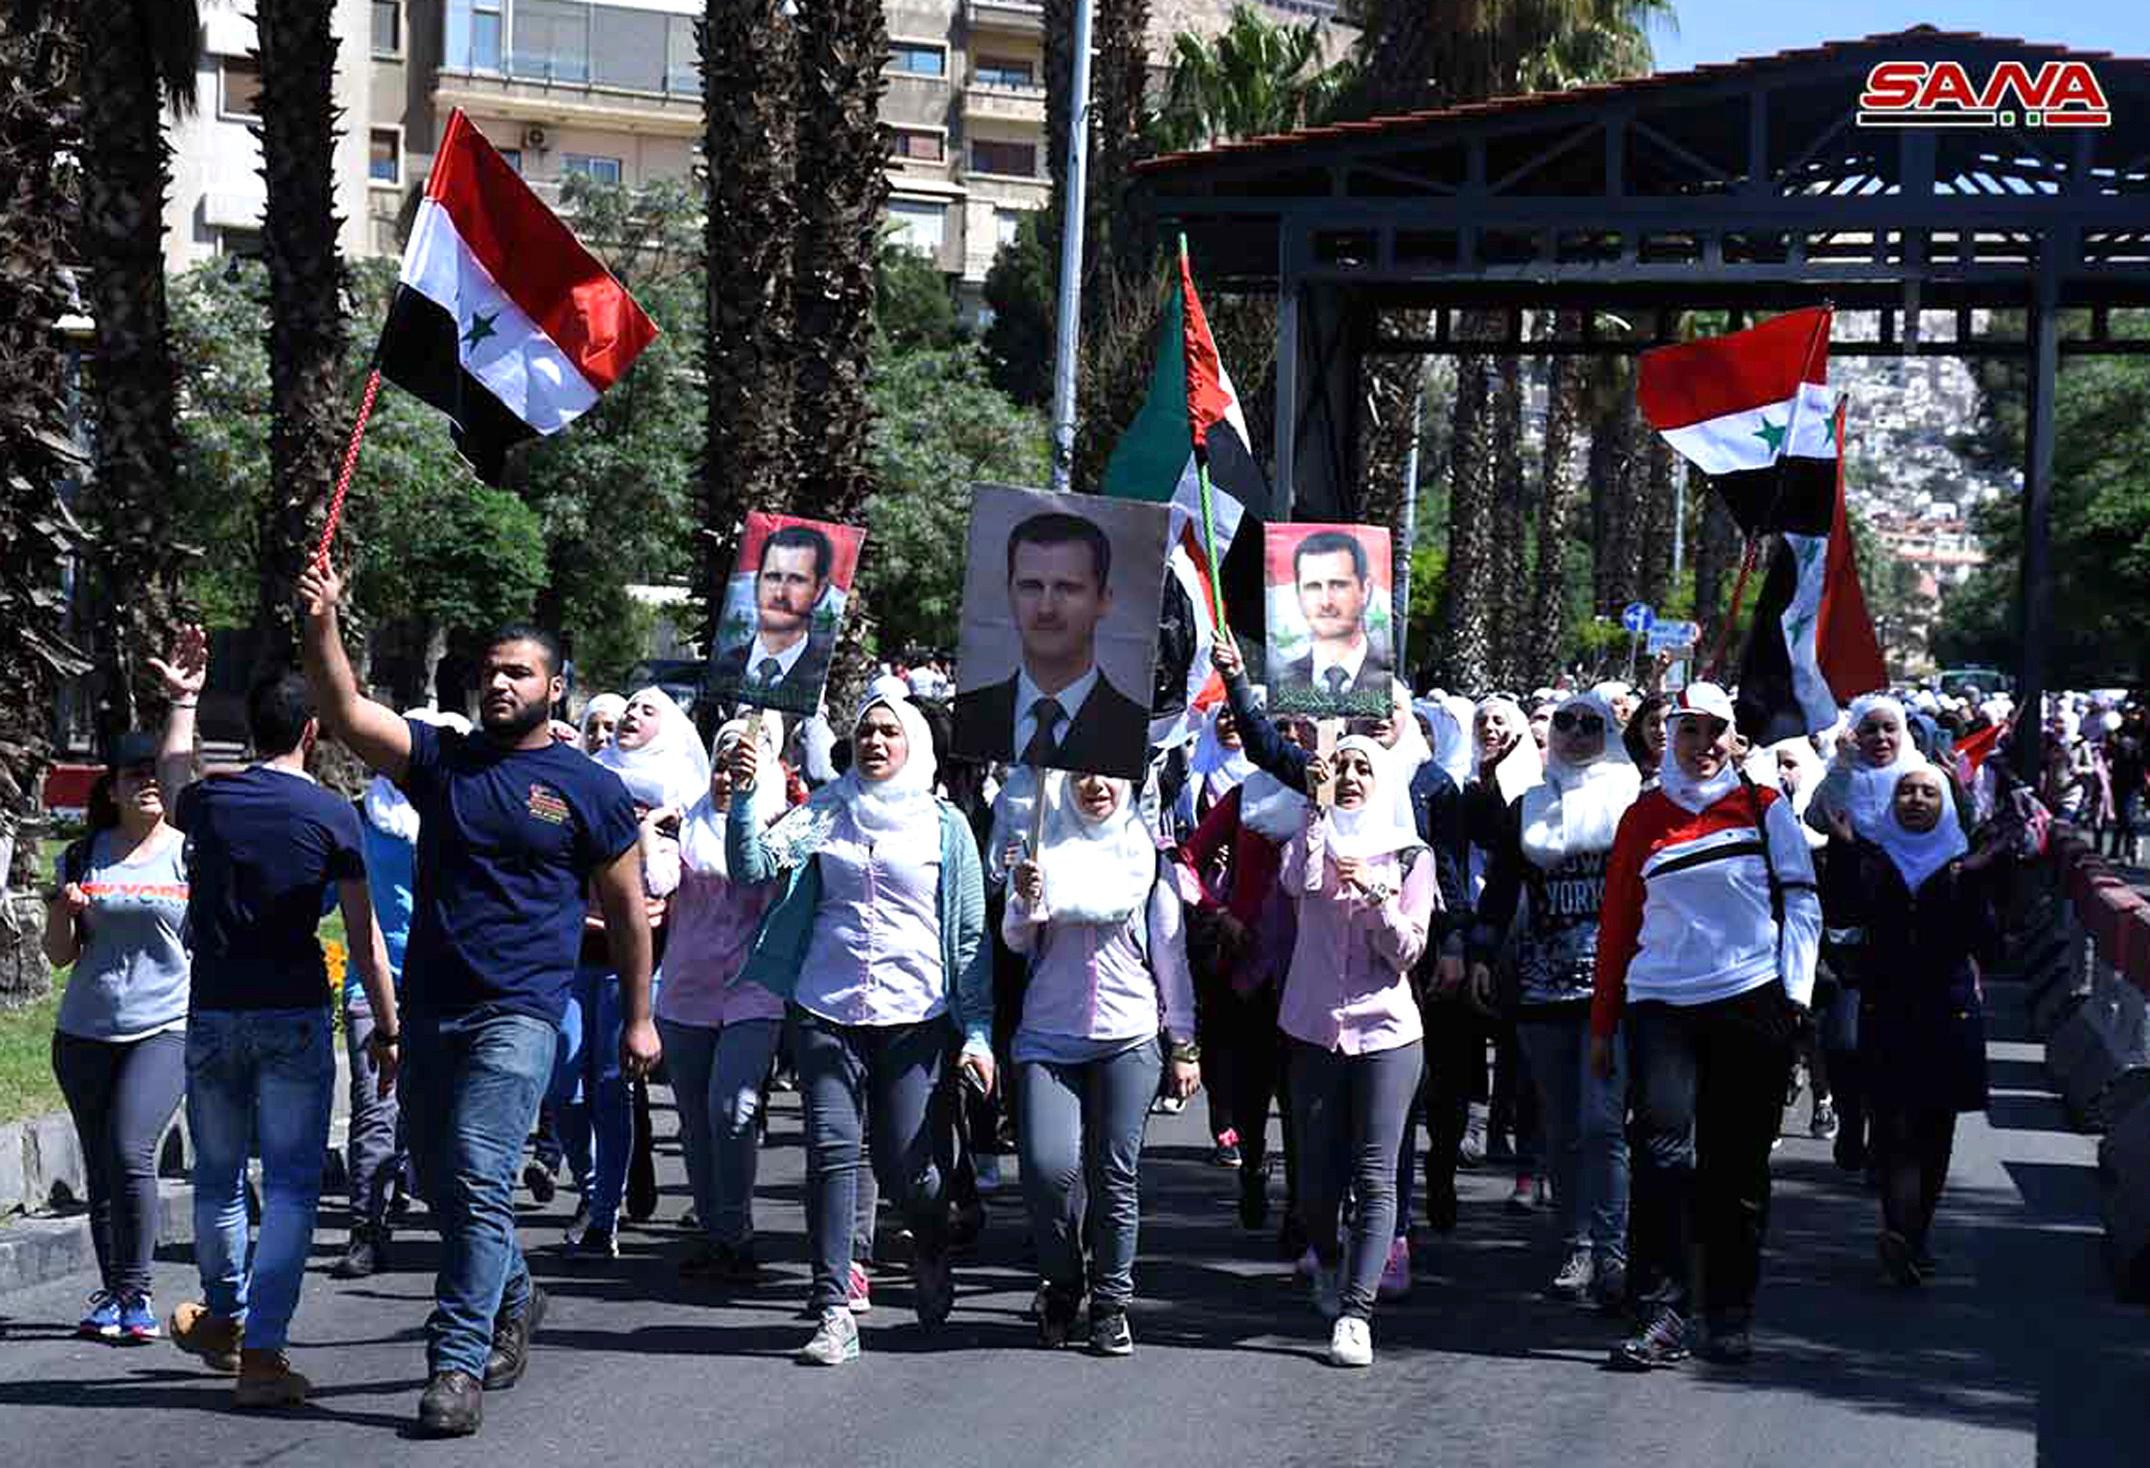 In this photo released by the Syrian official news agency SANA, Syrian protesters hold their national flags and portraits of their president Bashar Assad, as they march during a demonstration to show their solidarity with the Syrian armed forces, at Omayyad Square, in Damascus, Syria, Monday, April 16, 2018. Hundreds of Syrians have gathered in a landmark square in the capital of Damascus in support of their armed forces, which they say succeeded in confronting the unprecedented joint airstrikes by the West over the weekend. (SANA via AP)